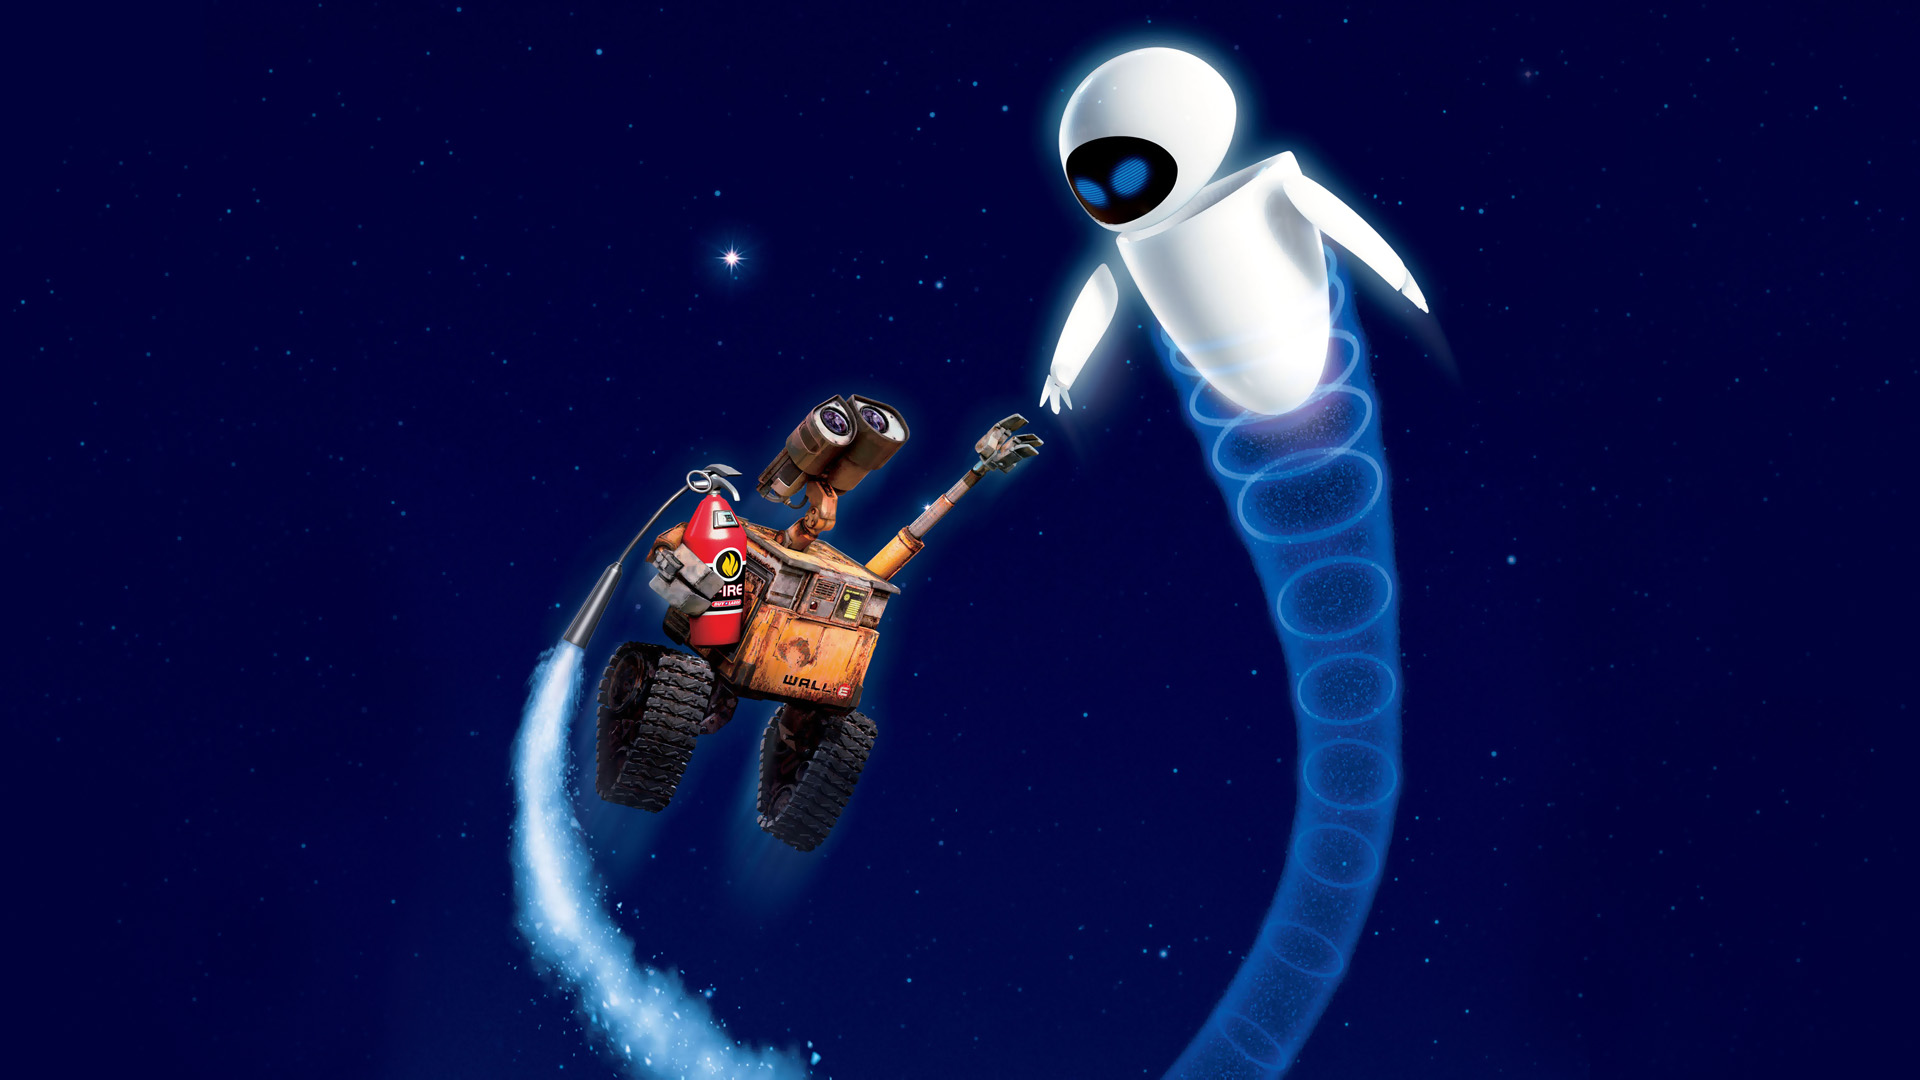 Wall e hd wallpapers for Wallpaper hd home movie